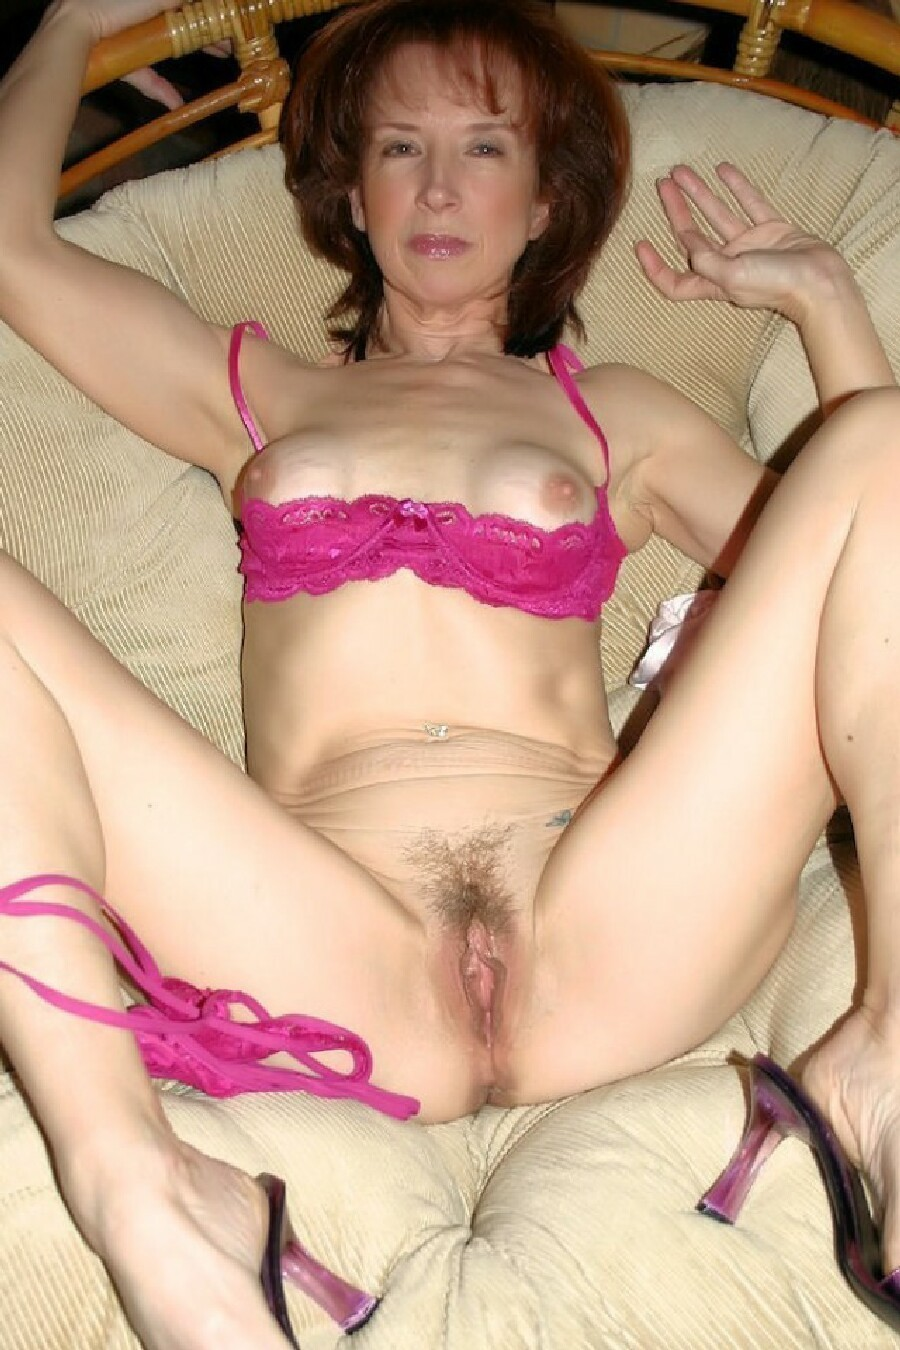 26 yo milf i met on adult chat 2 2